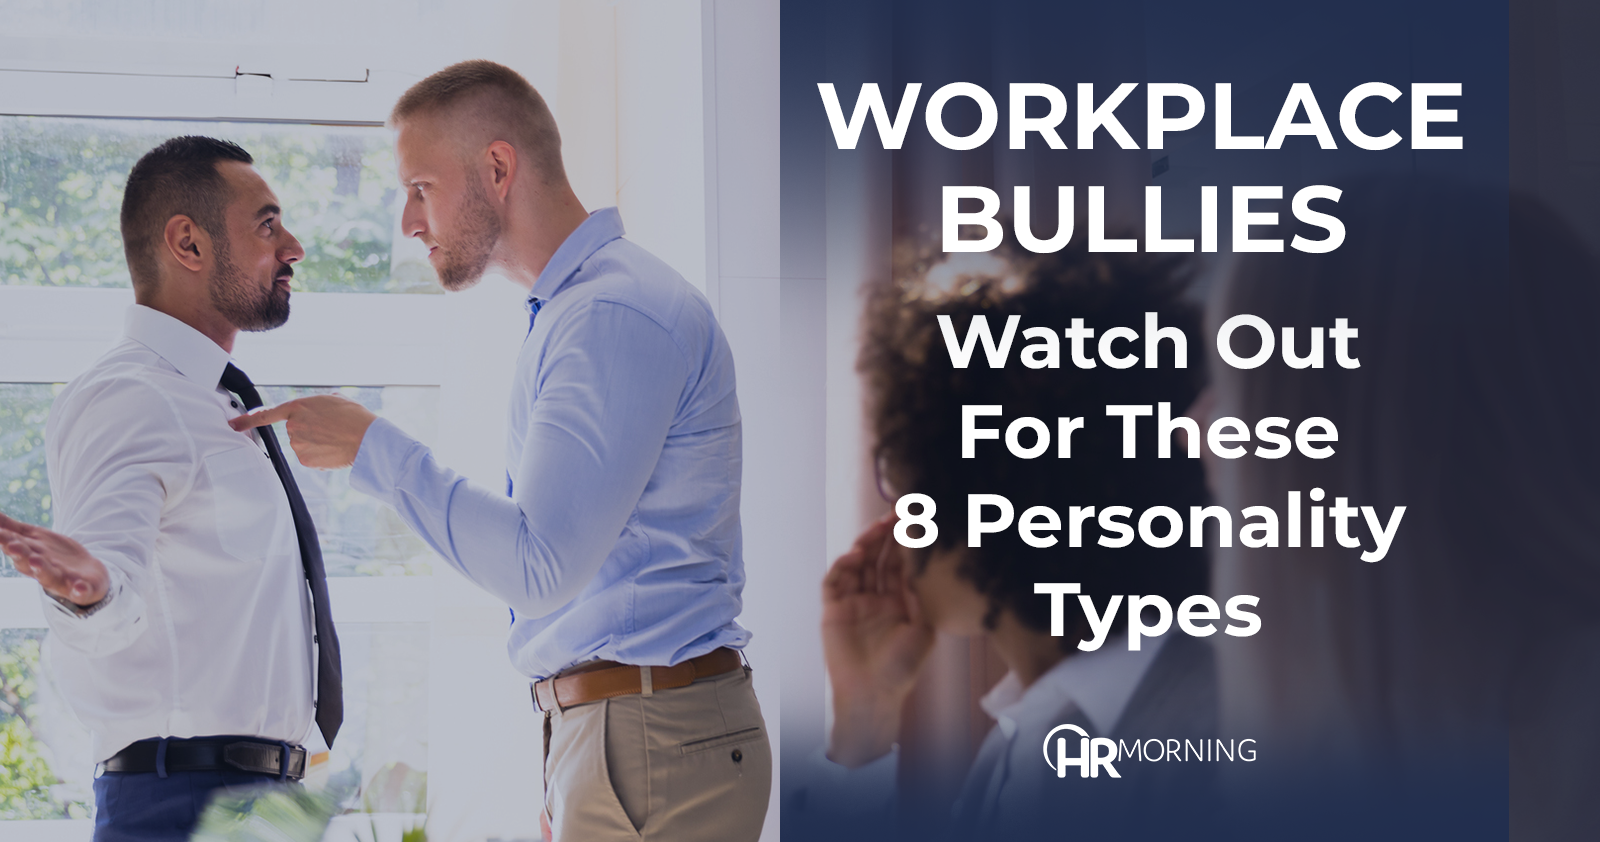 Workplace Bullies: Watch Out for these 8 Personality Types